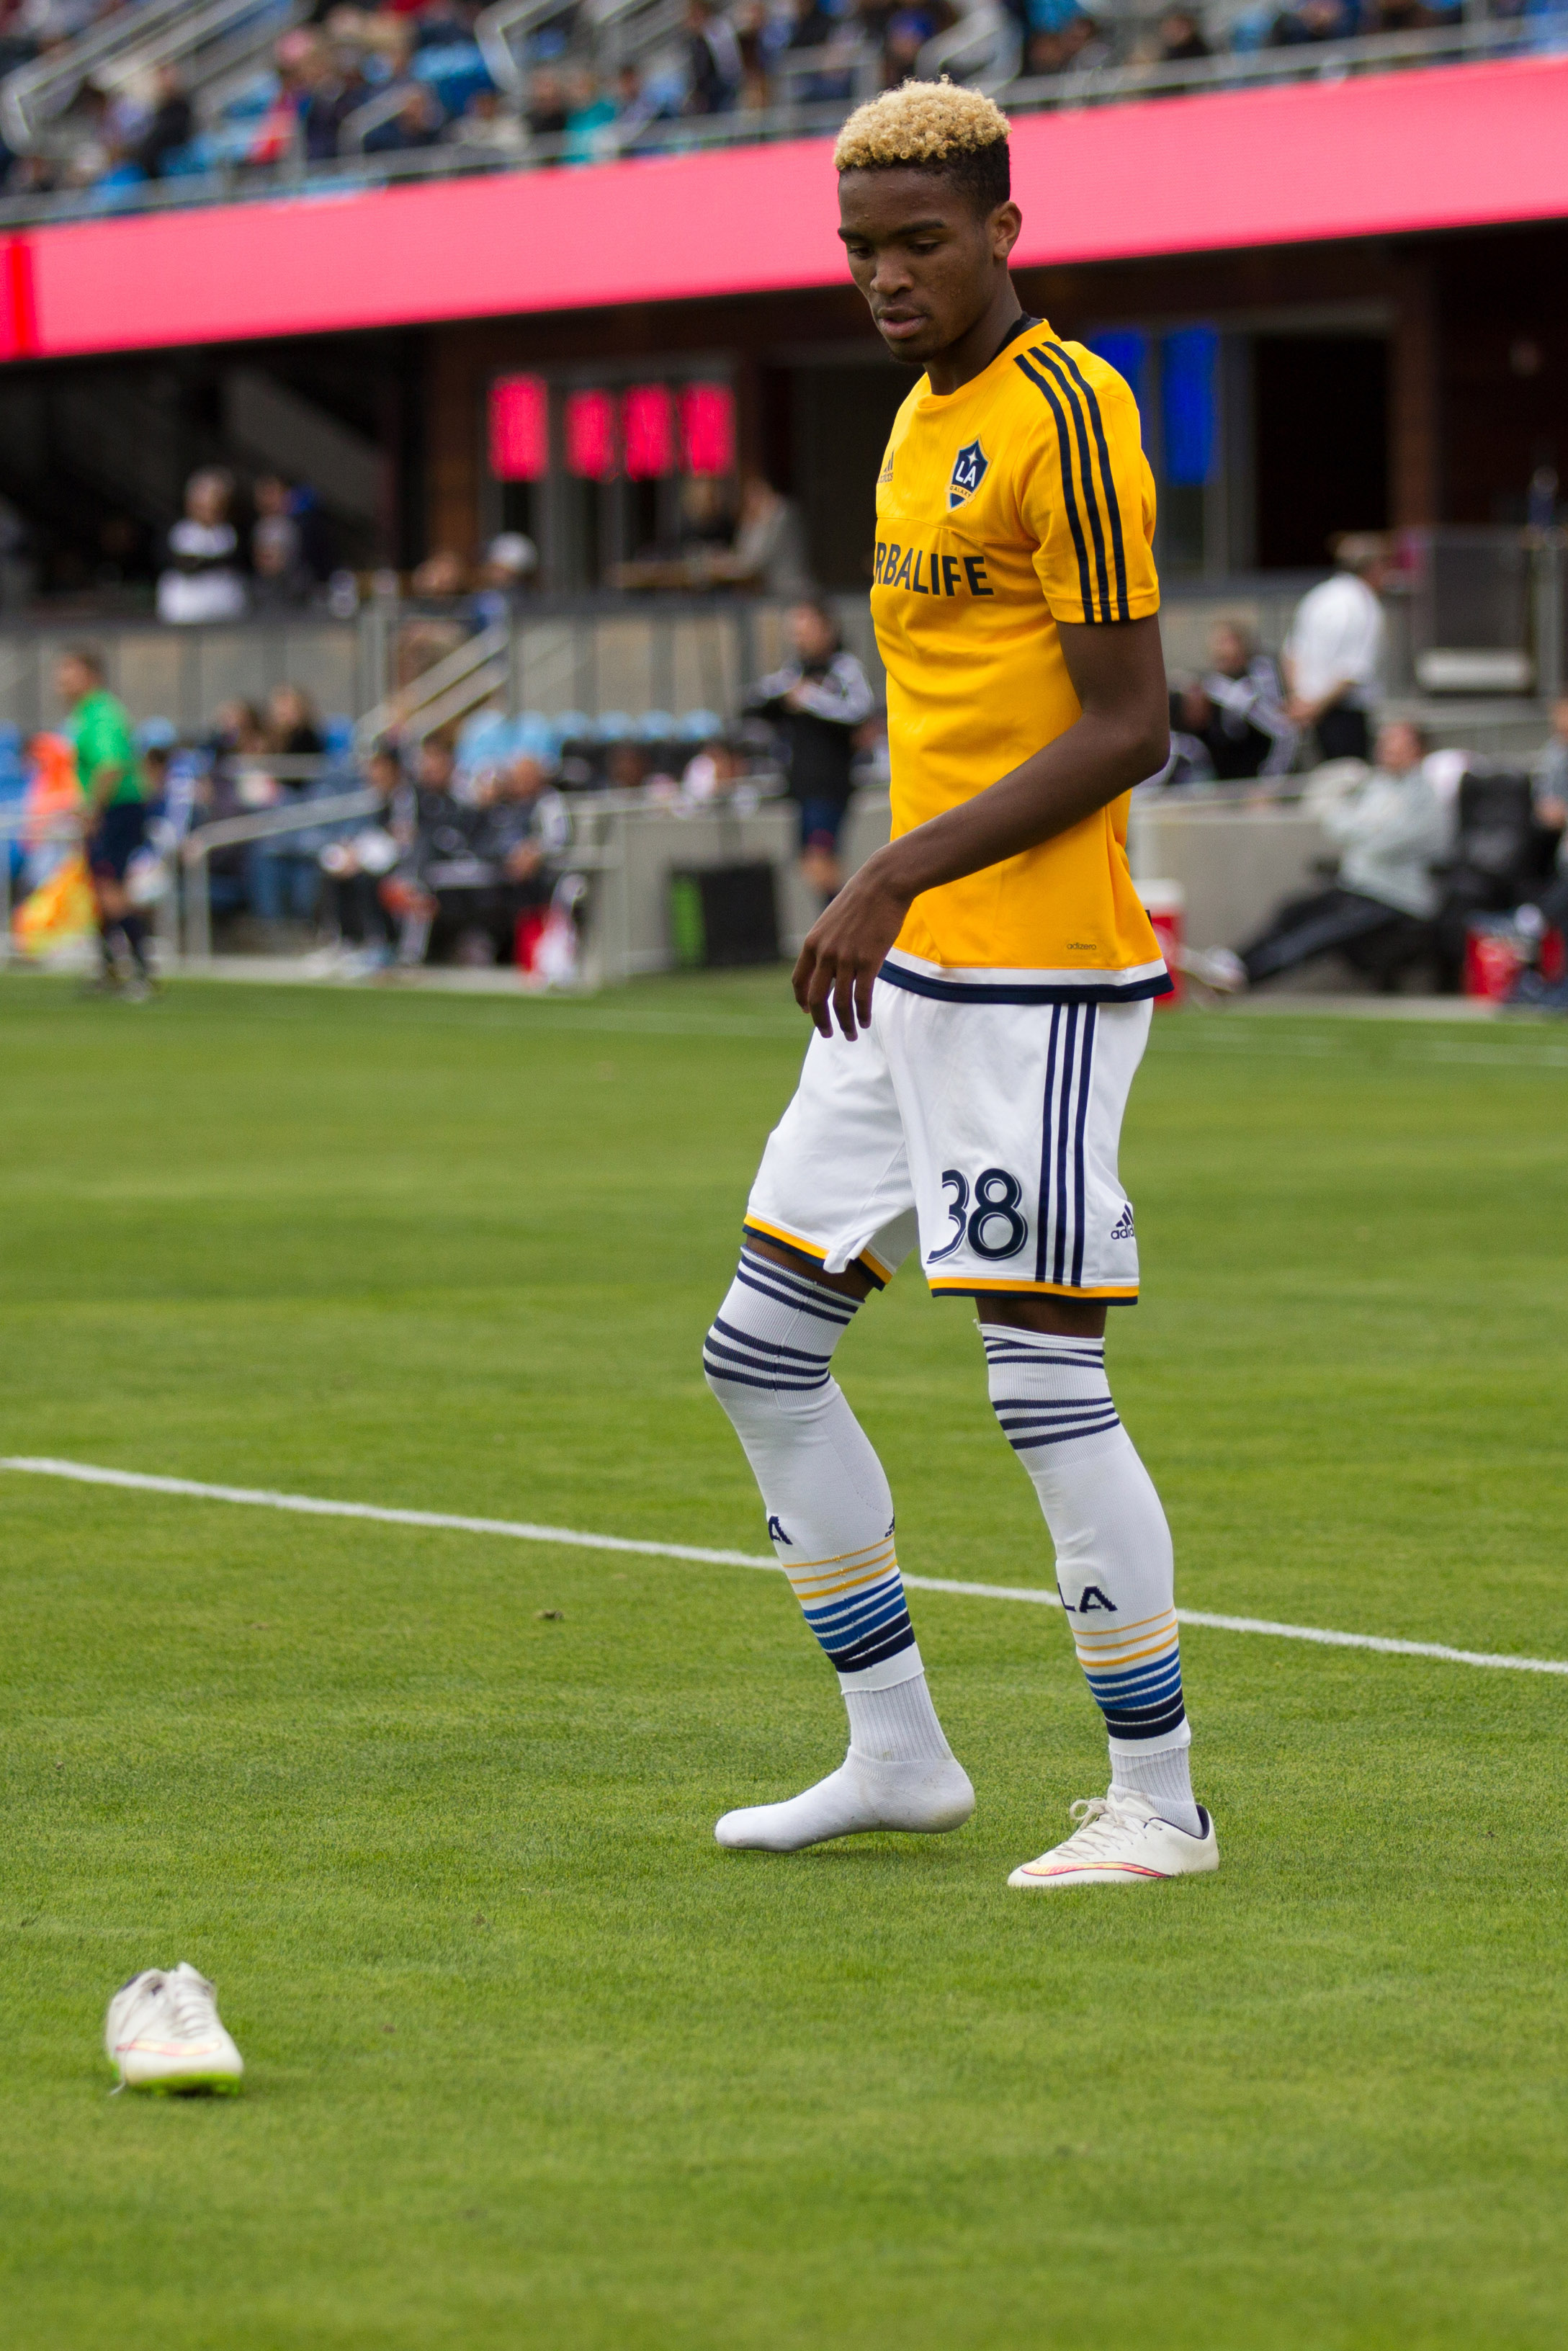 Expect a slew of players like Jamieson, who spent time with CUSA before moving to the Galaxy, in the coming years.